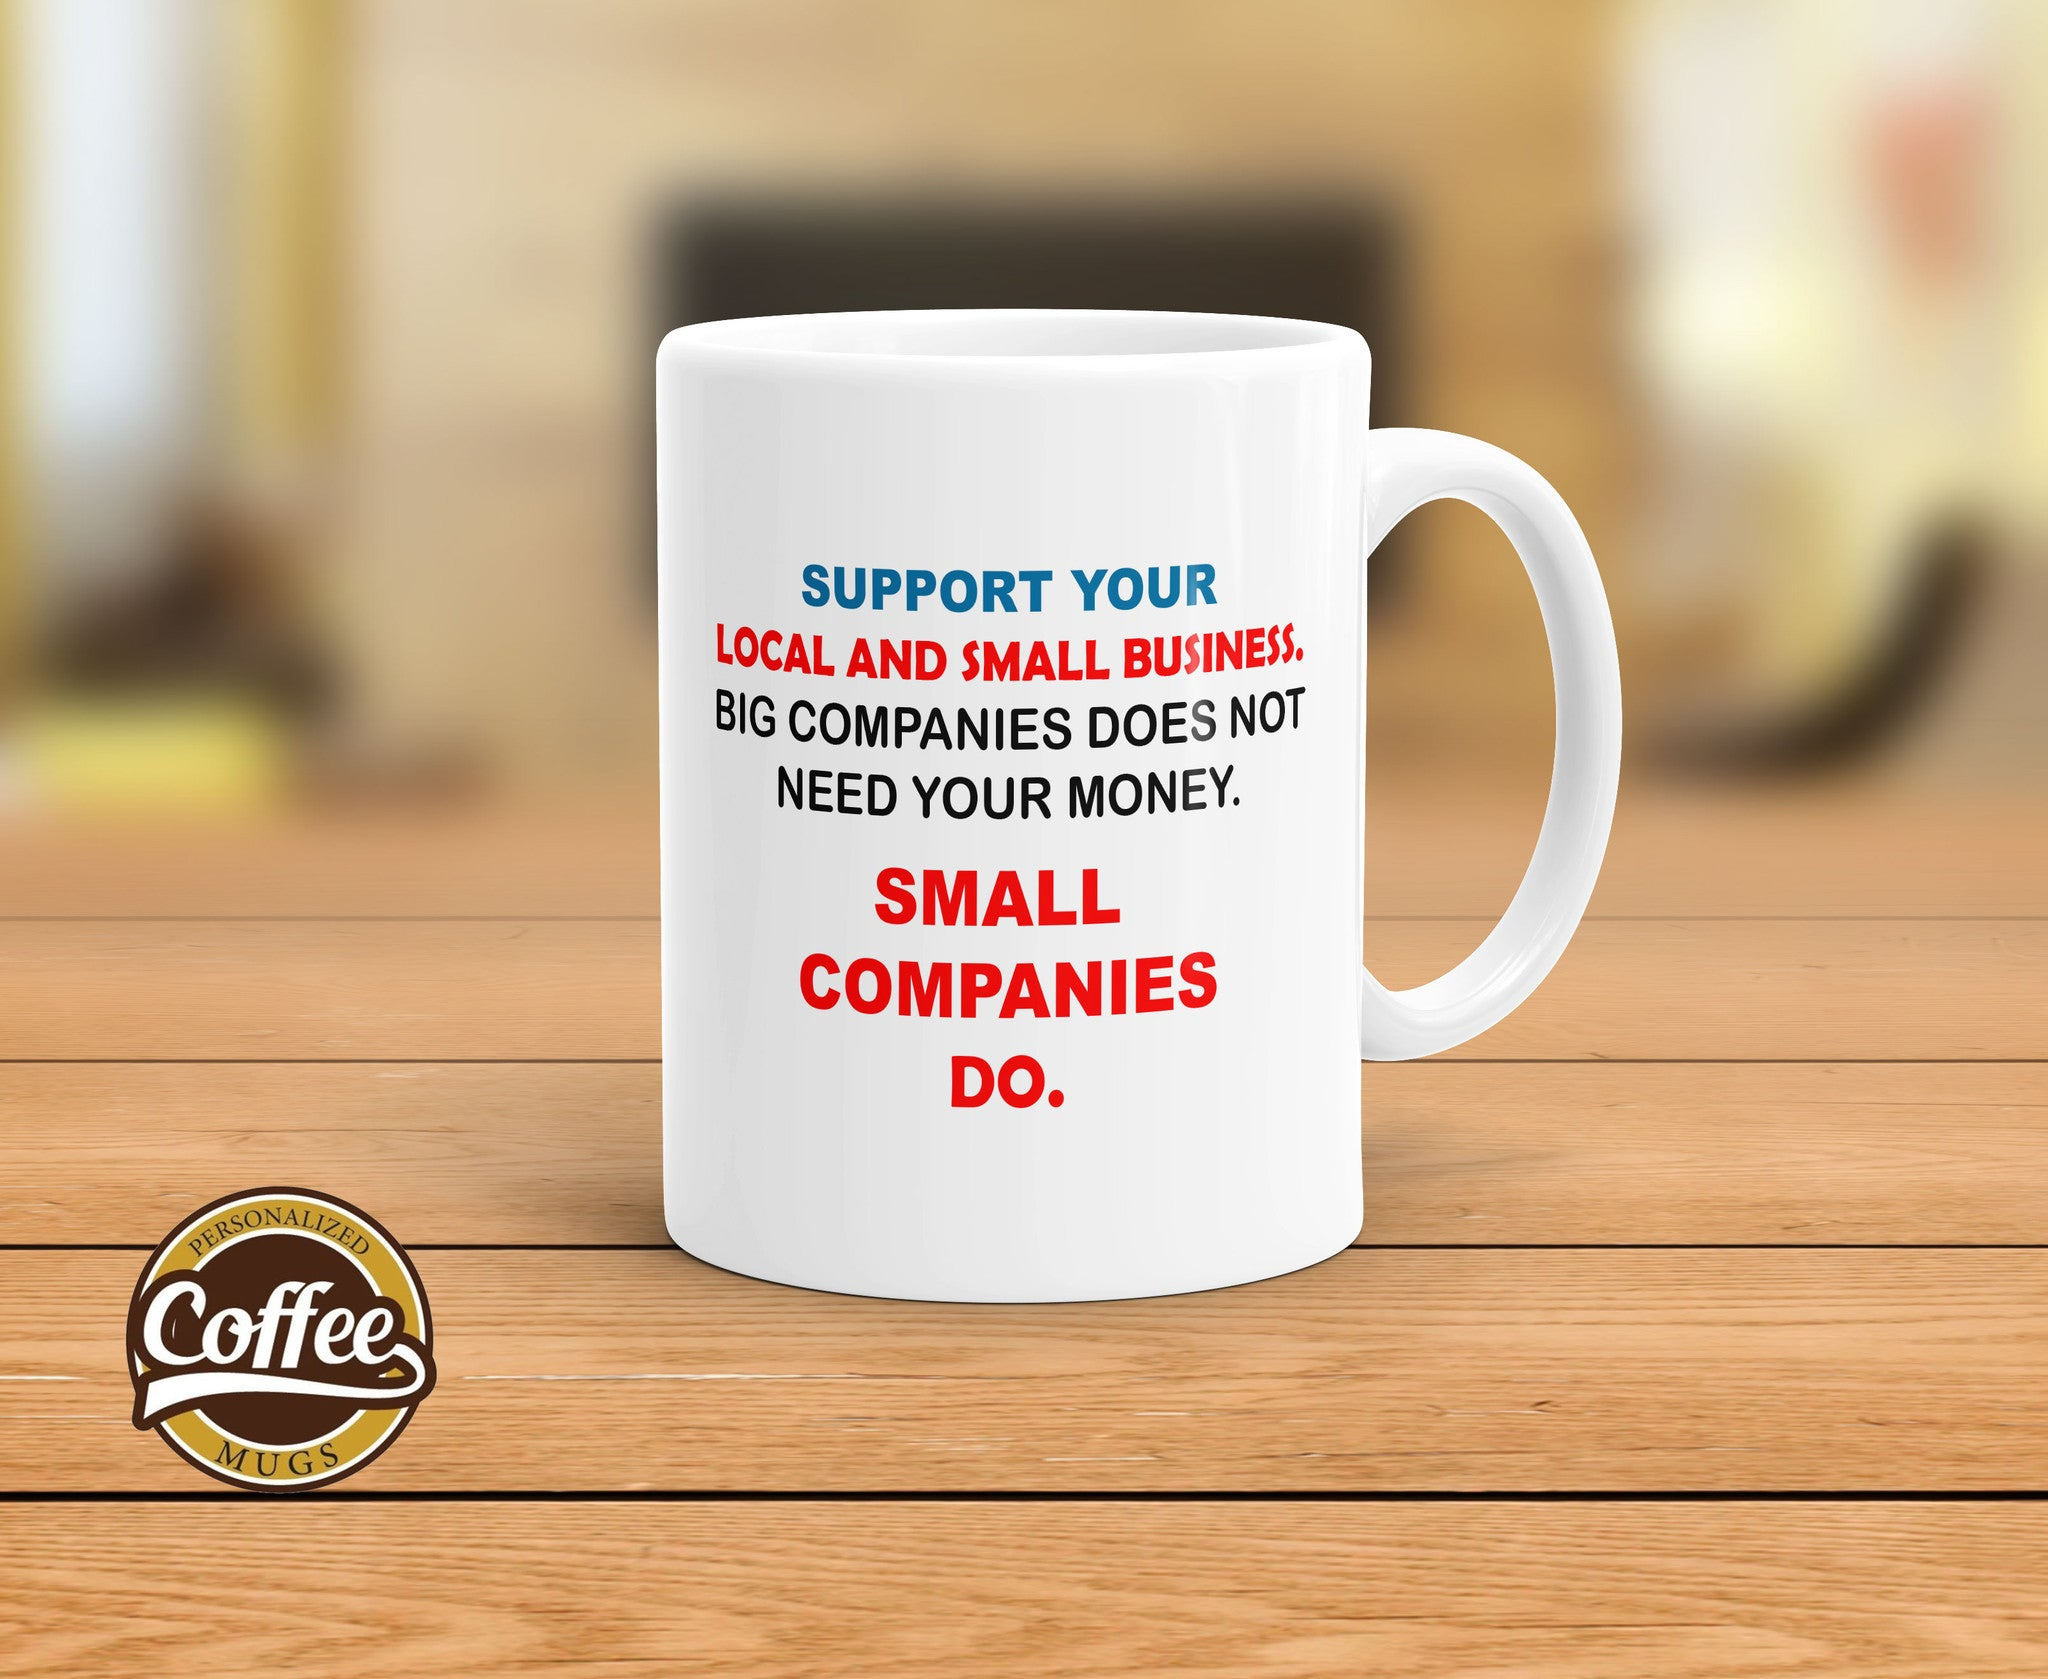 Custom Coffee Mugs - Why supporting local and small business?